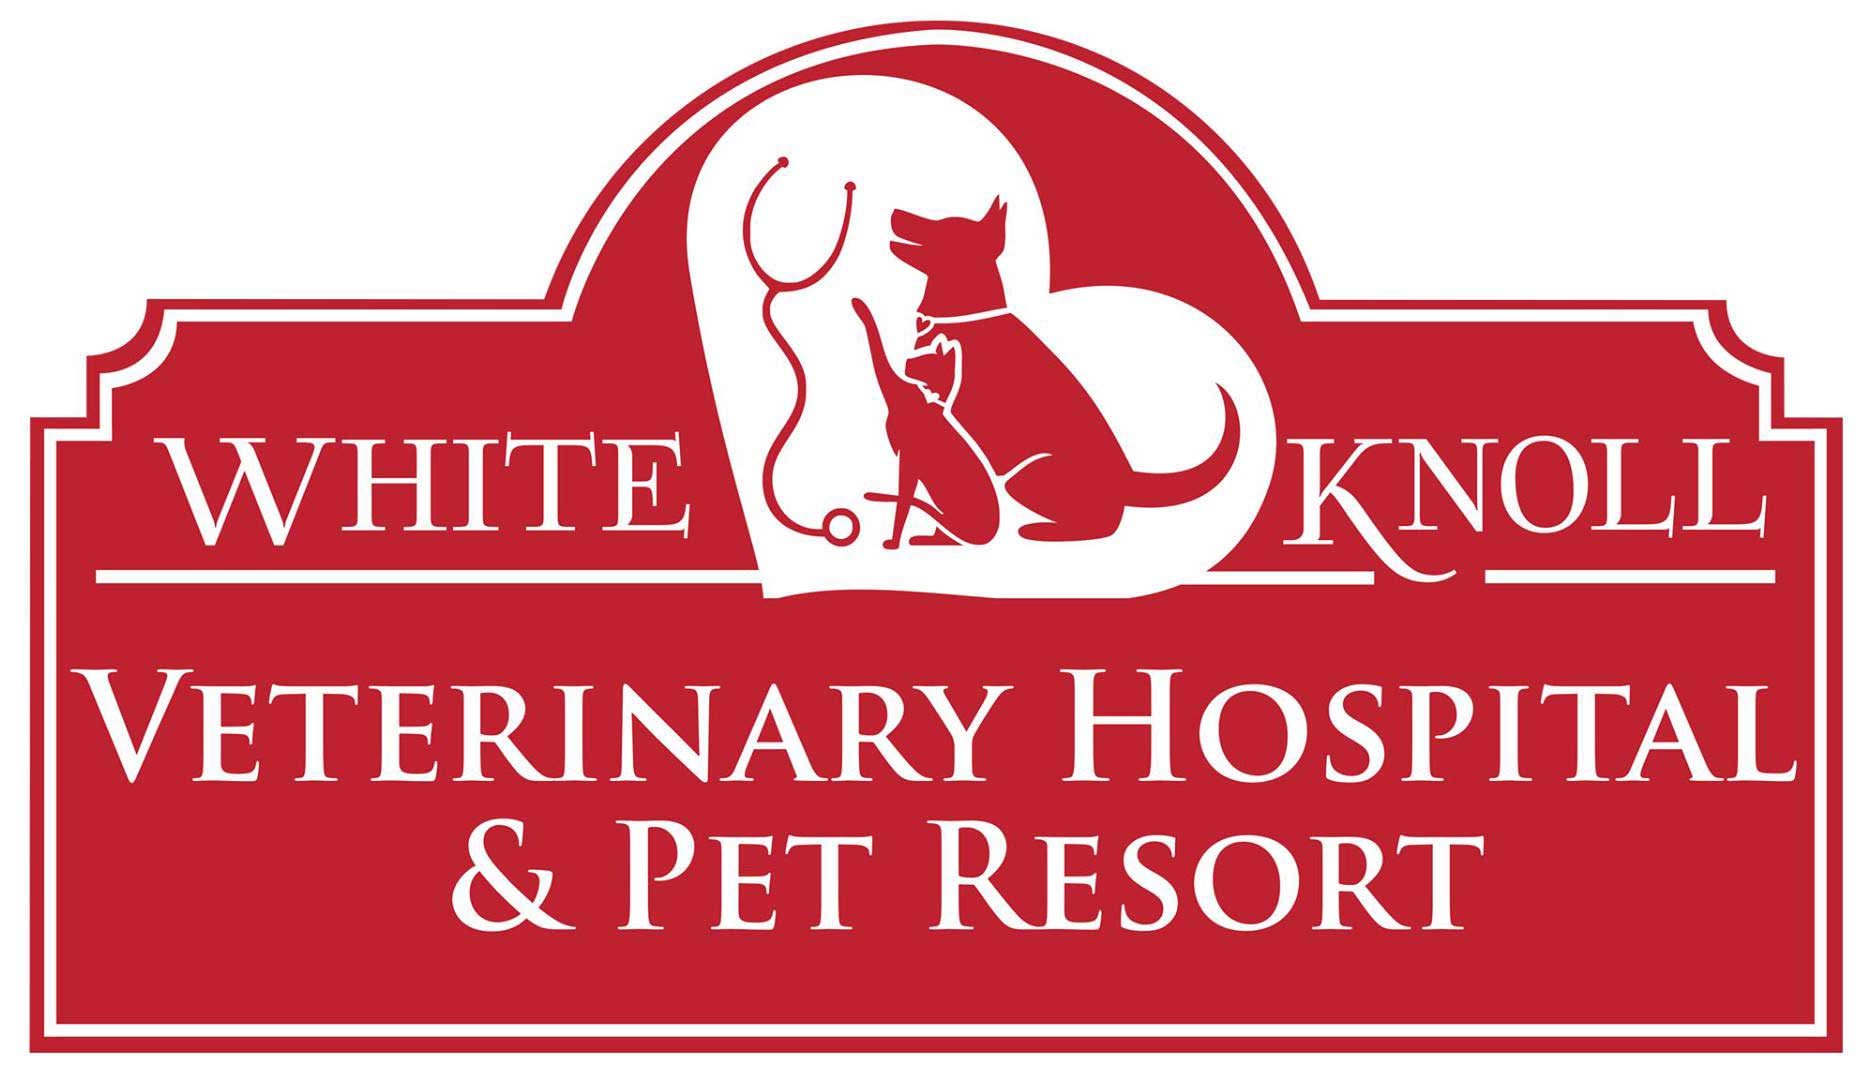 Day Spa In Lexington Sc White Knoll Veterinary Hospital And Pet